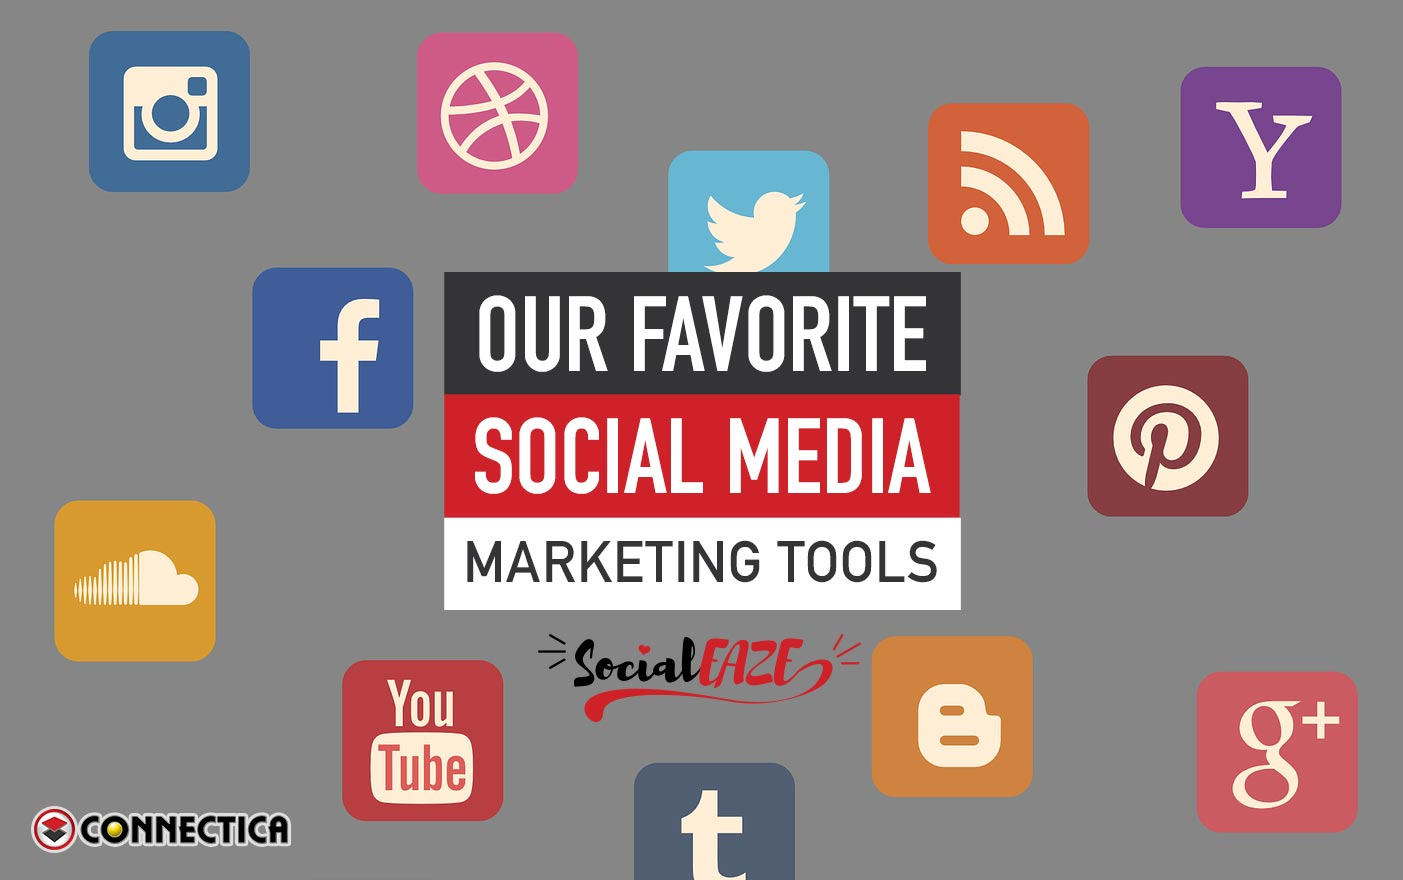 Our FAVORITE Social Media Marketing Tools